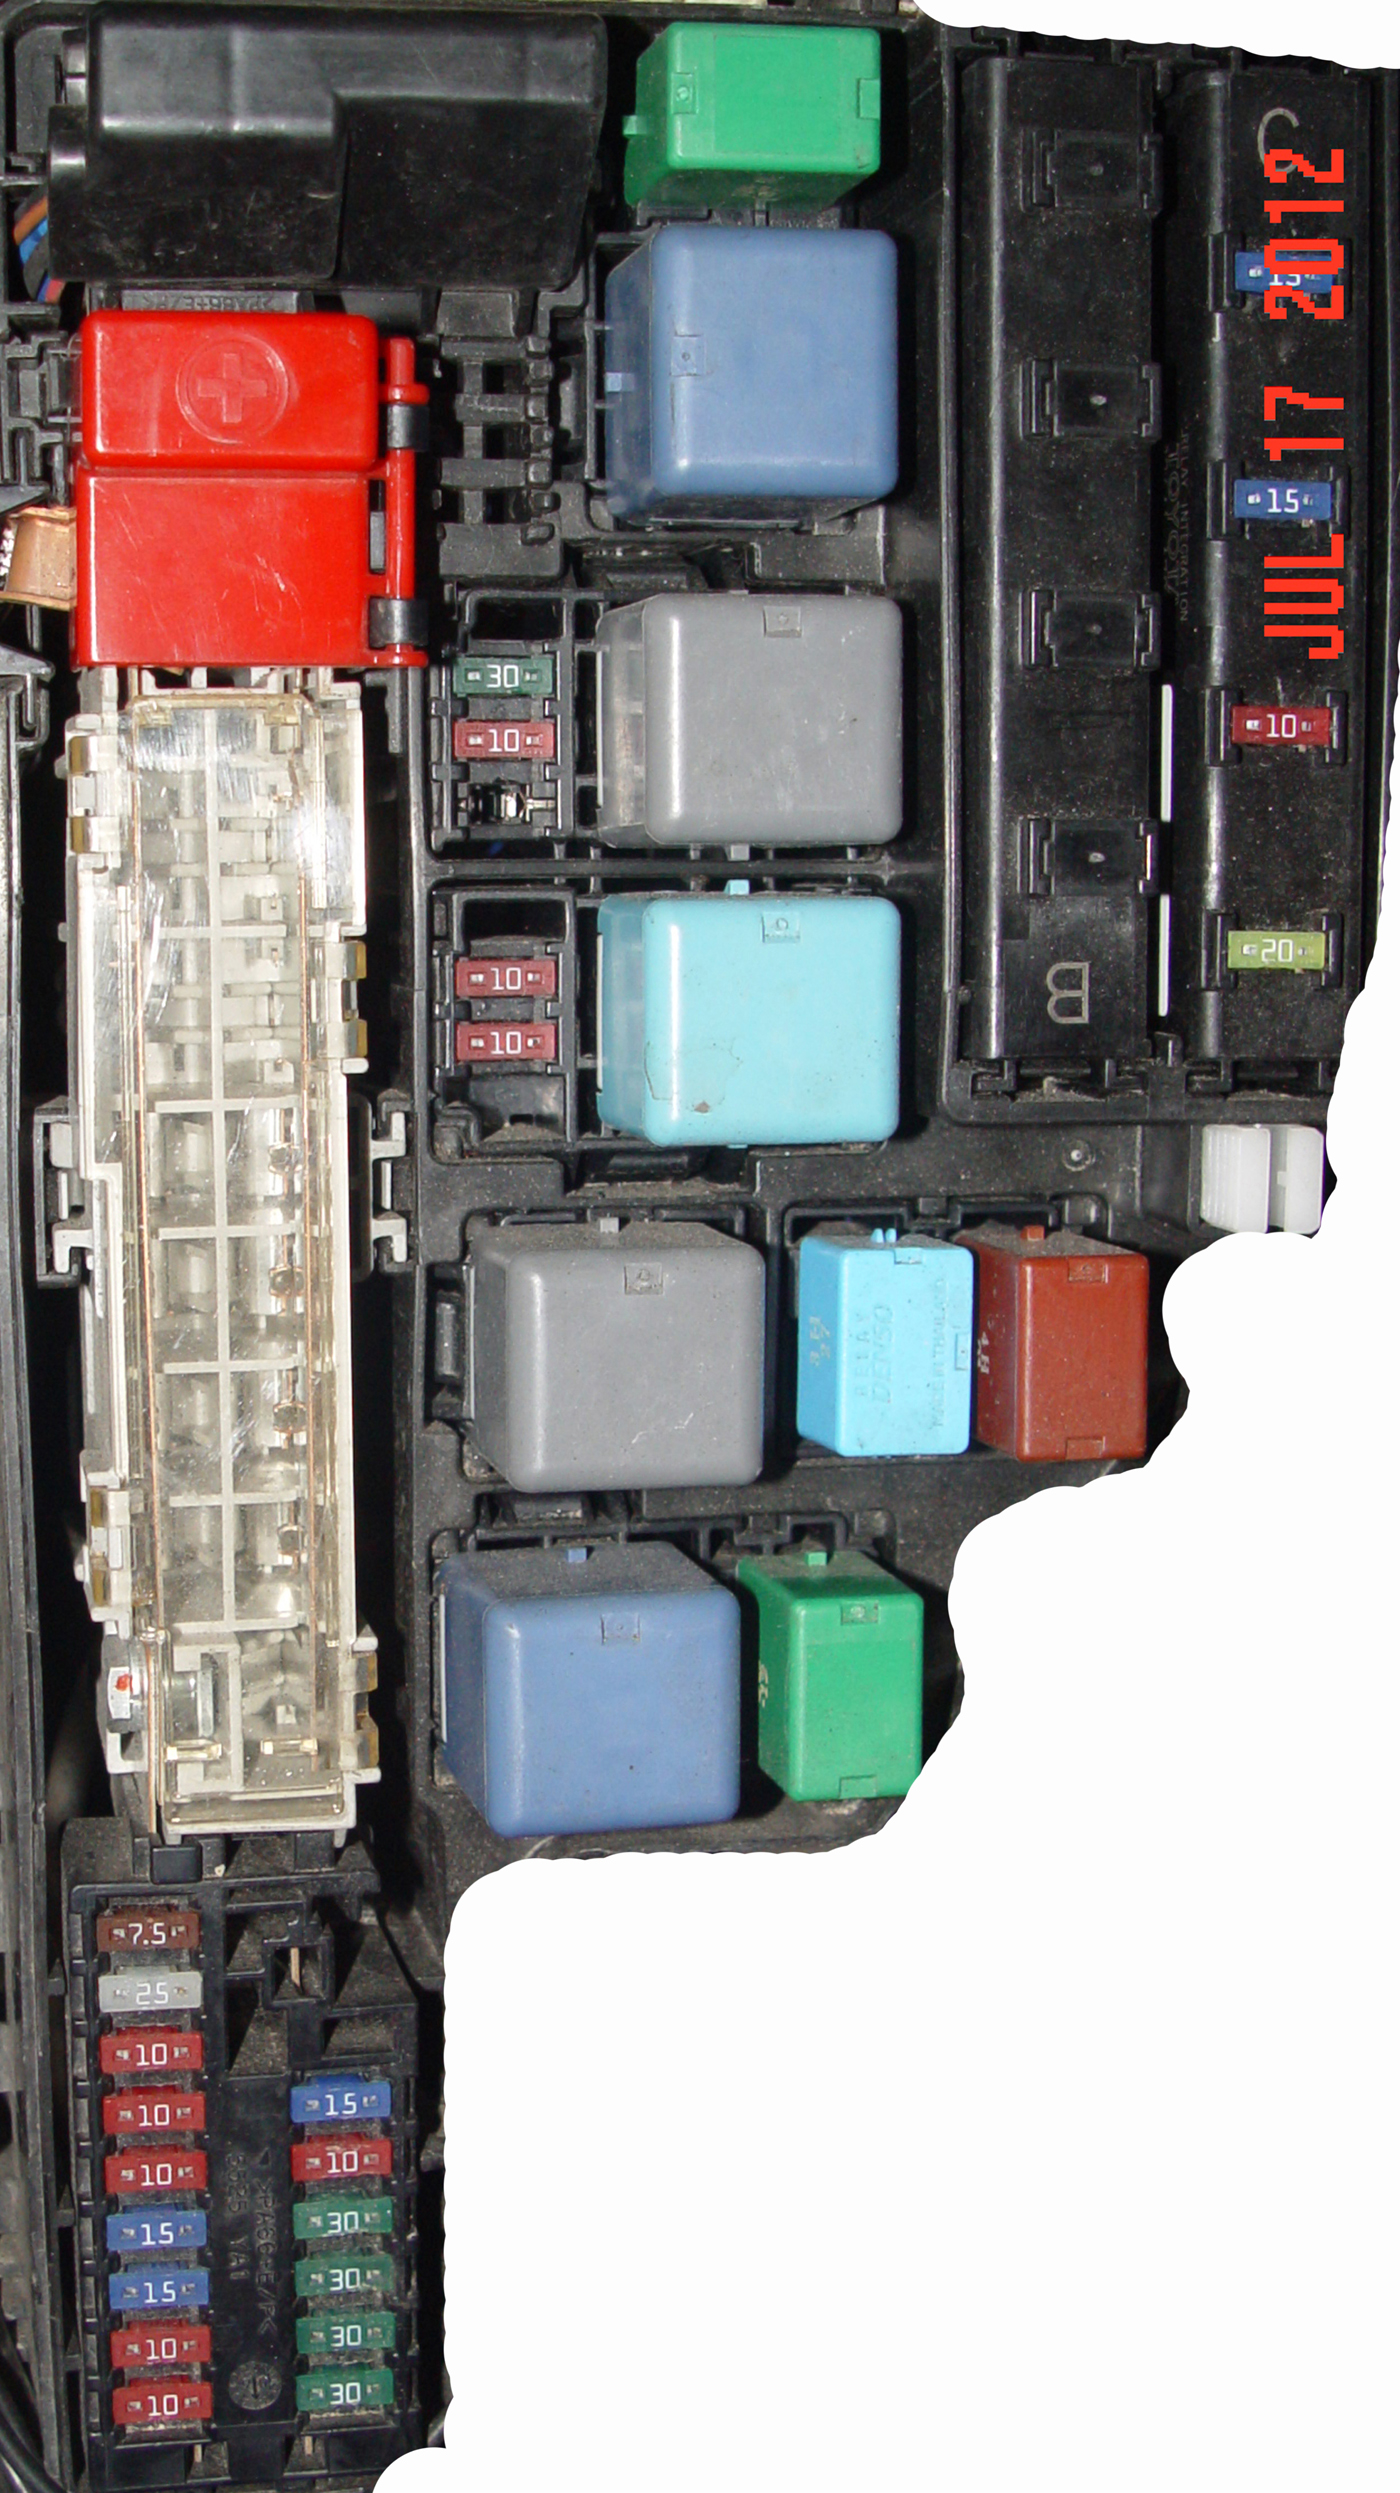 2004 toyota prius fuse box diagram iirGtIL 2008 toyota prius fuse box 2007 toyota prius fuse box \u2022 free access to 2010 prius fuse box at love-stories.co